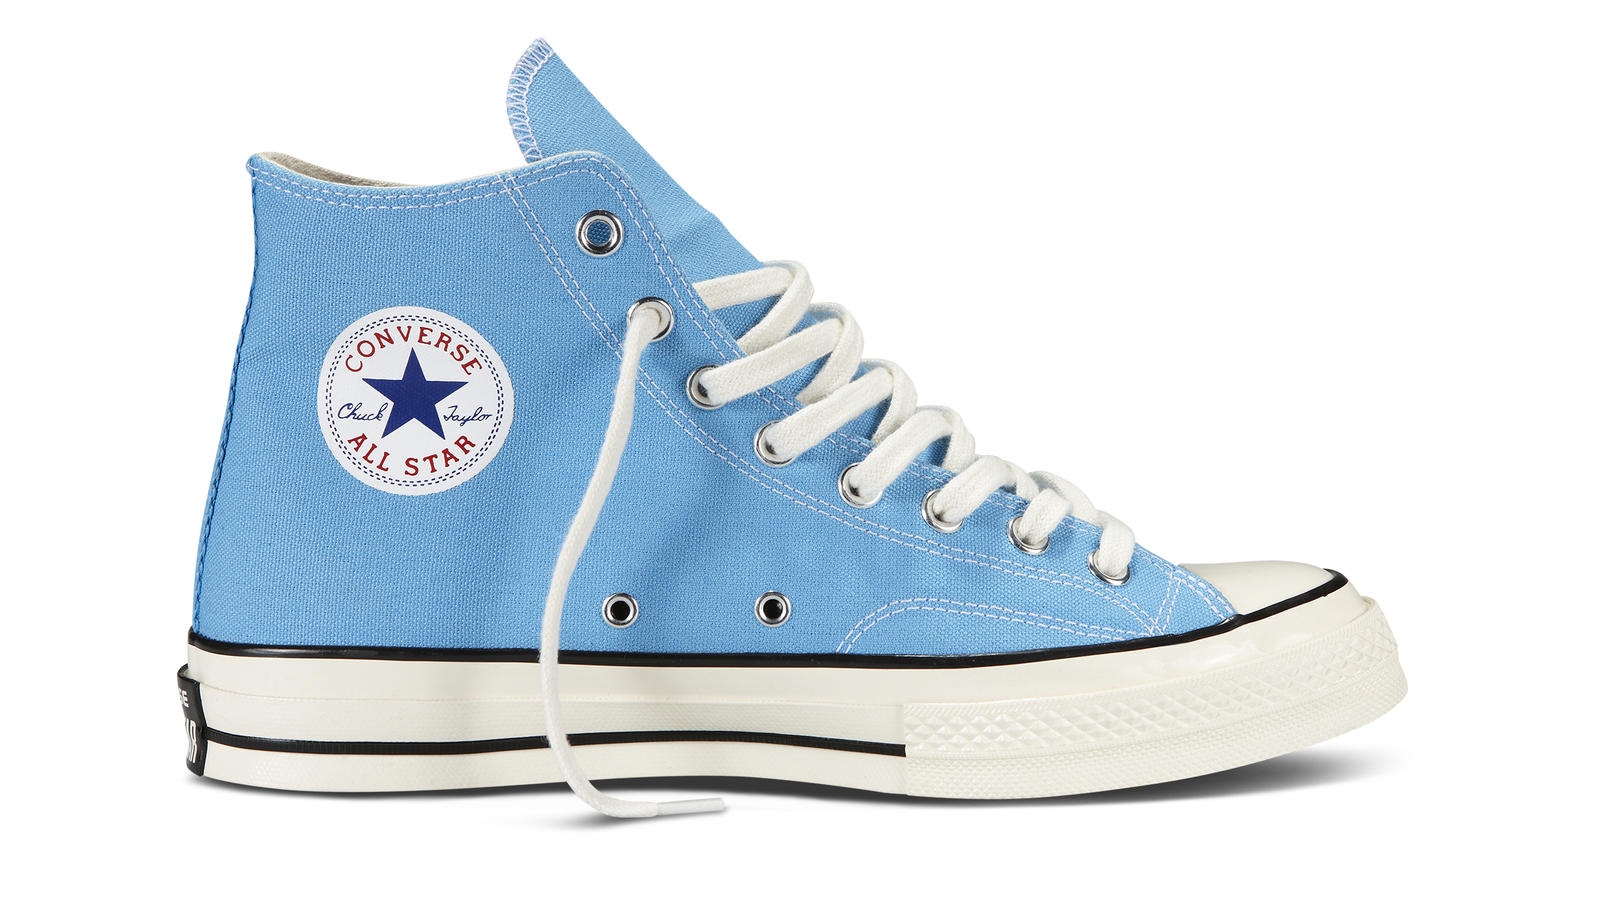 Converse Announces Spring 2014 All Star Collection - Nike News